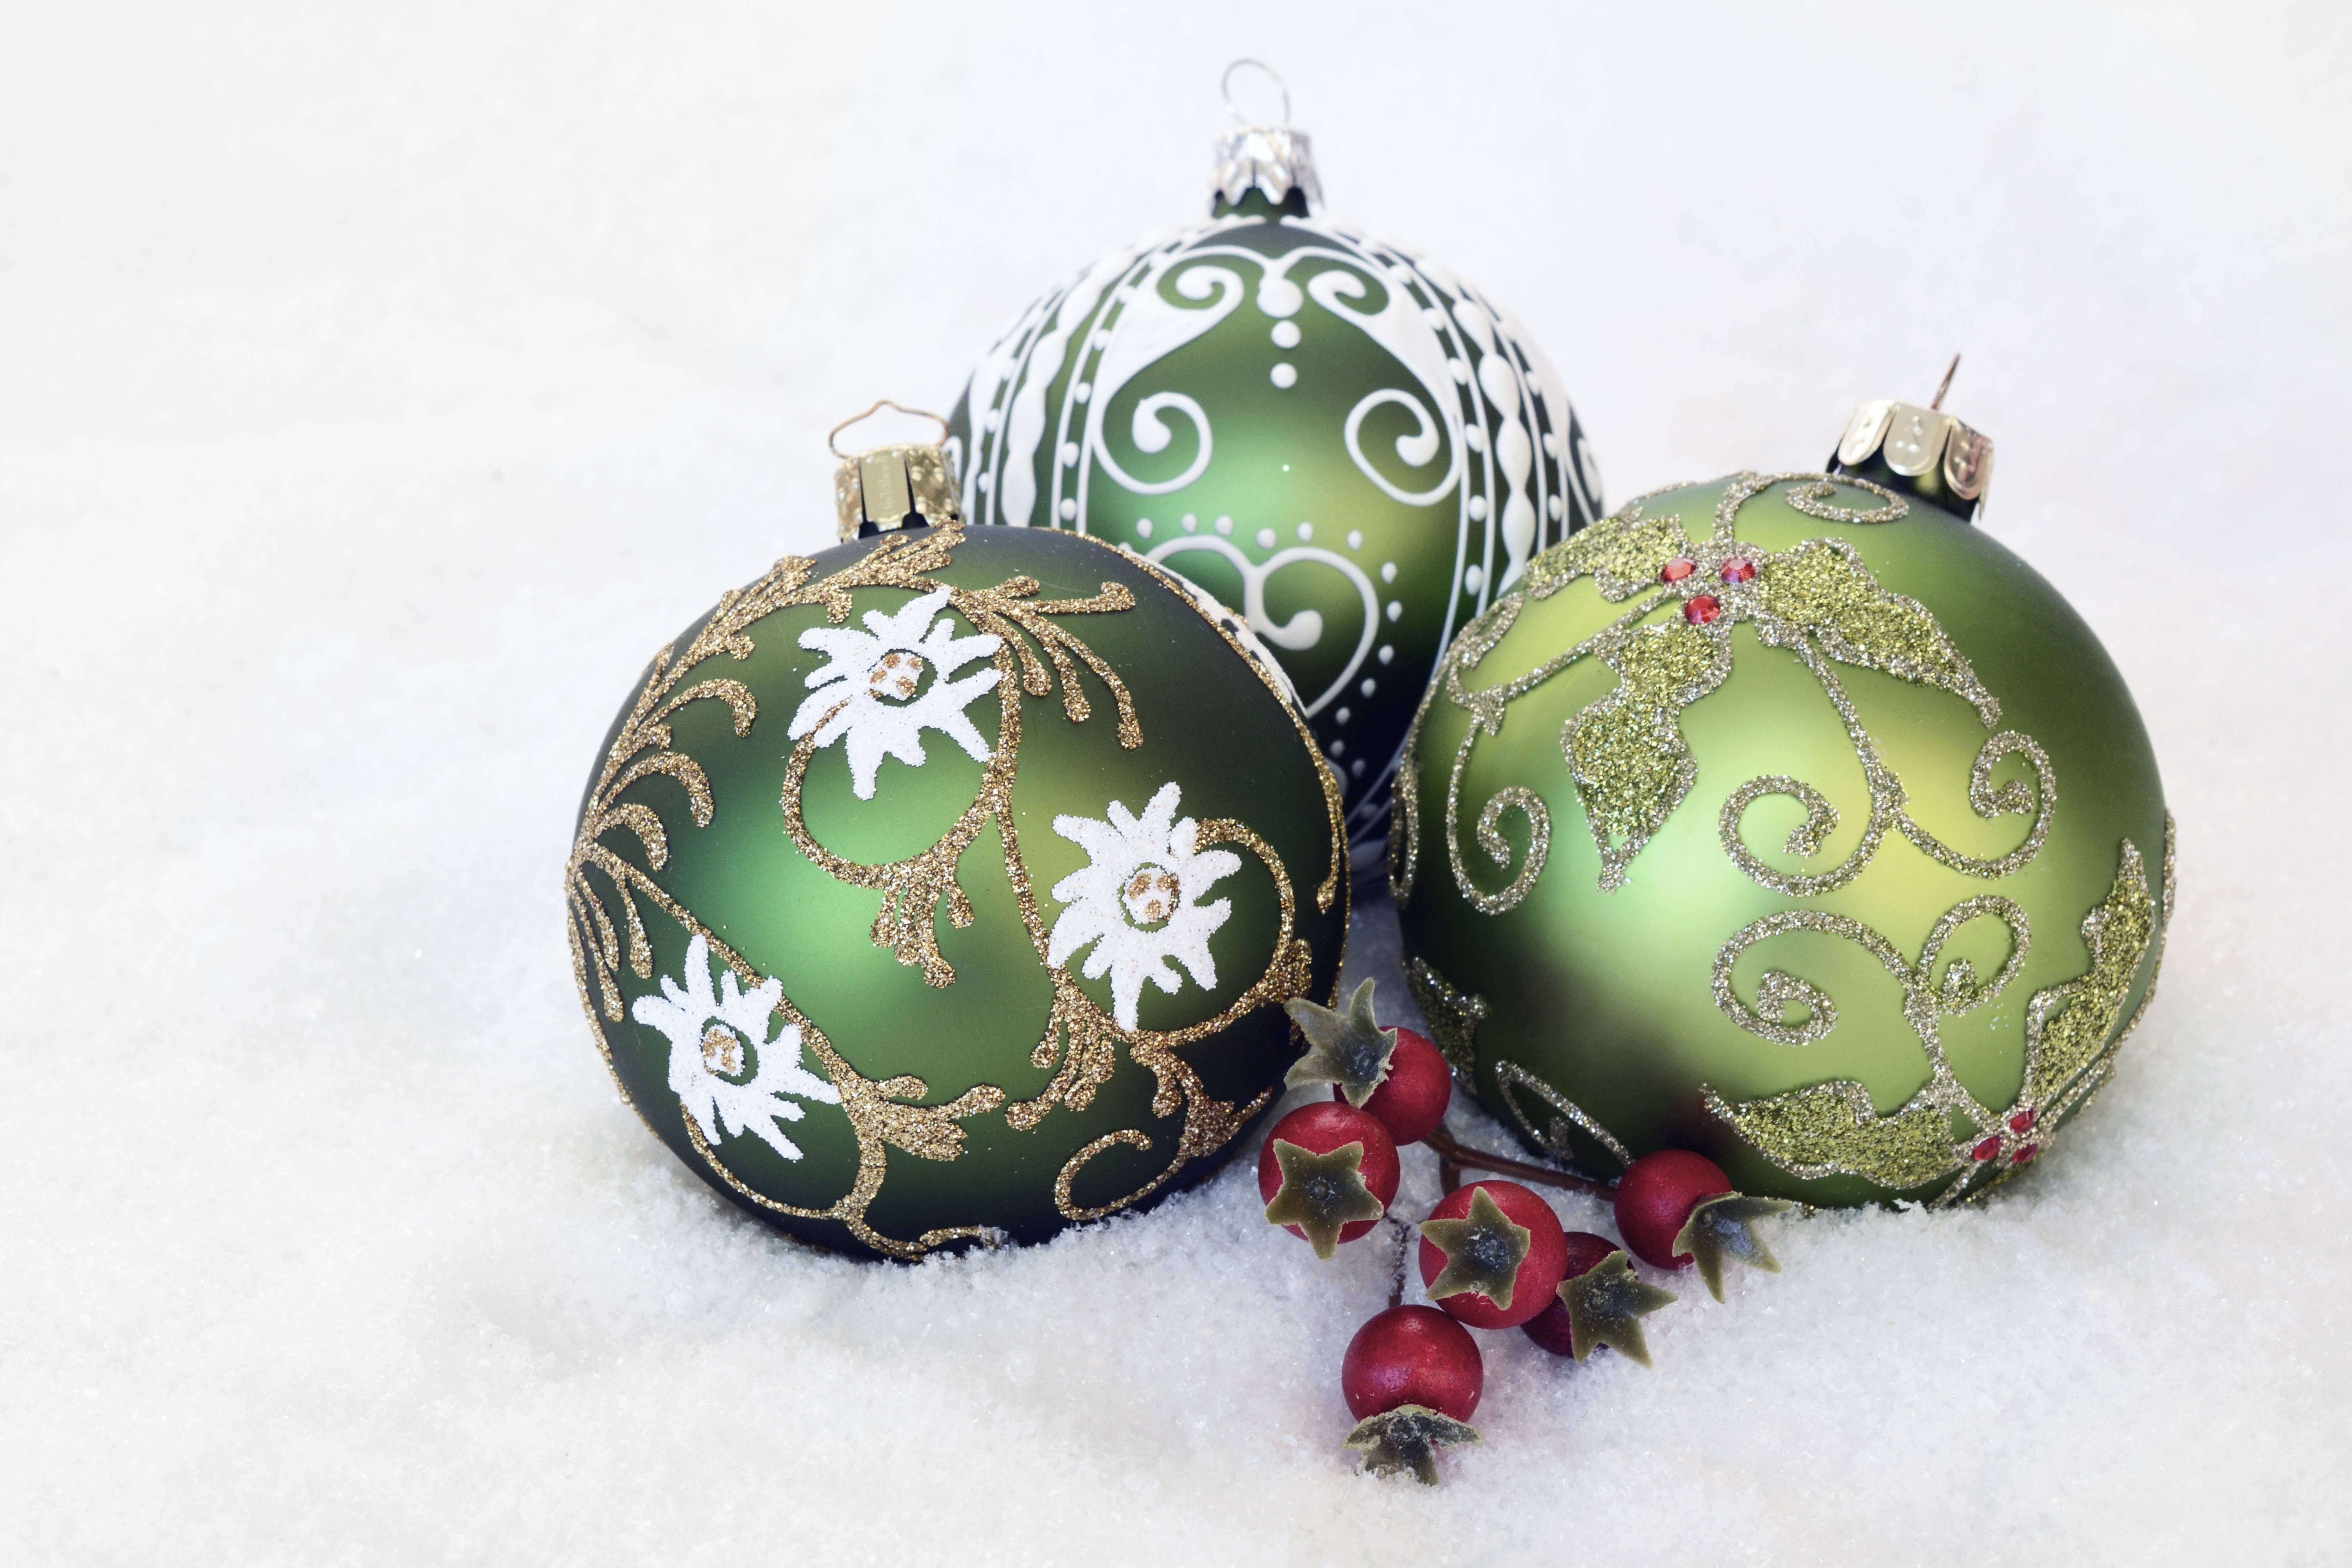 Frohe Weihnachten - Merry Christmas - christmas bauble 2956231